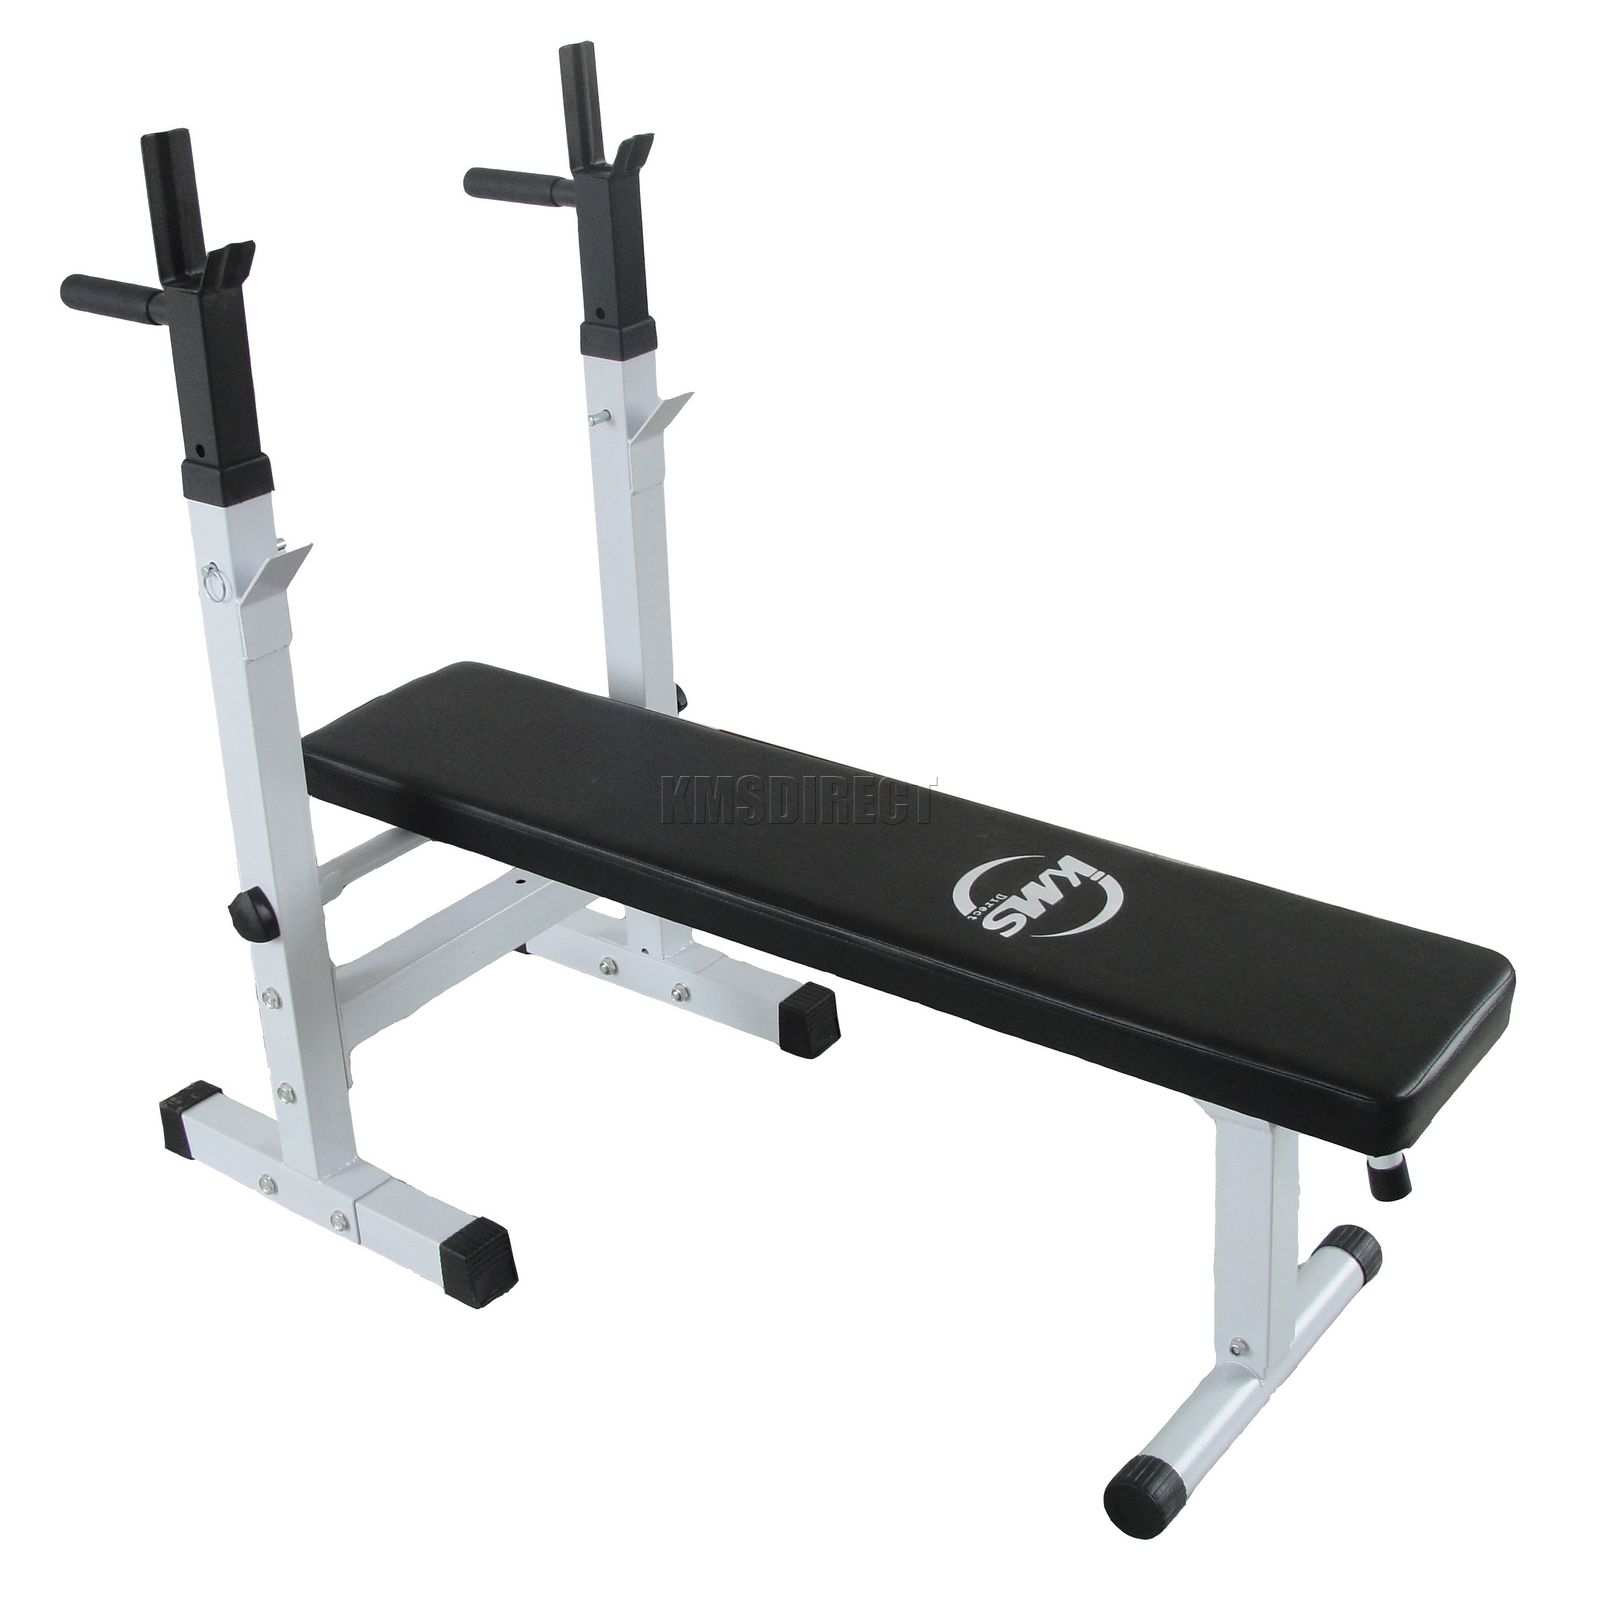 Kms Foldable Bench Press Chest Weight Indoor Fitness